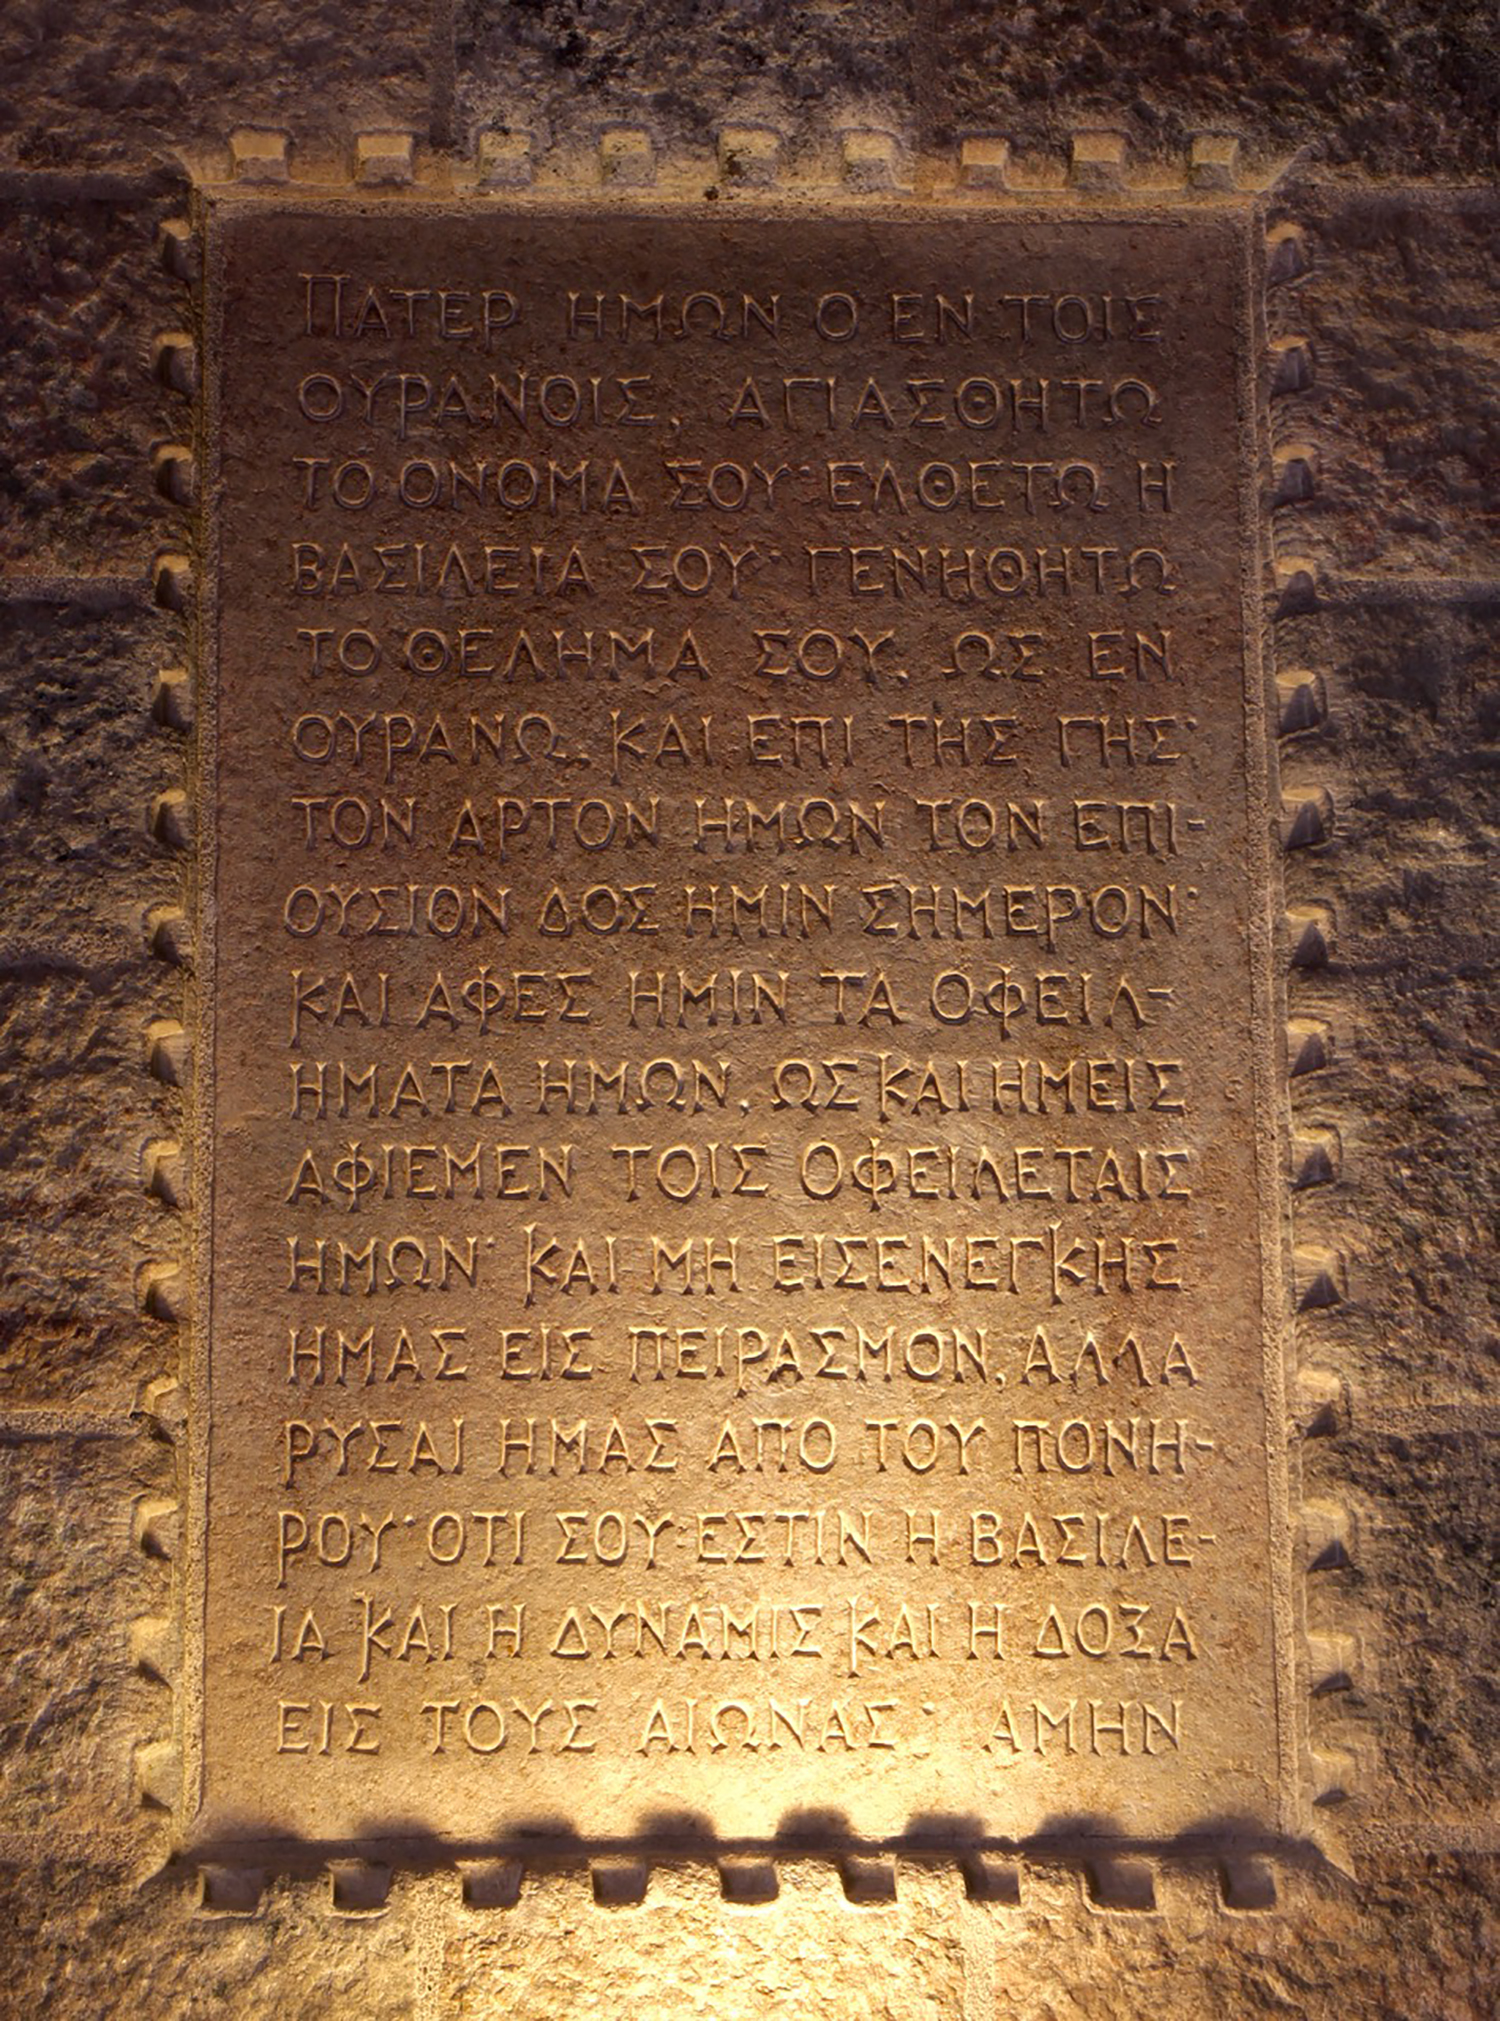 Figure 12: The inscription on the right wall is the Lord's Prayer in Greek, the language of the New Testament.